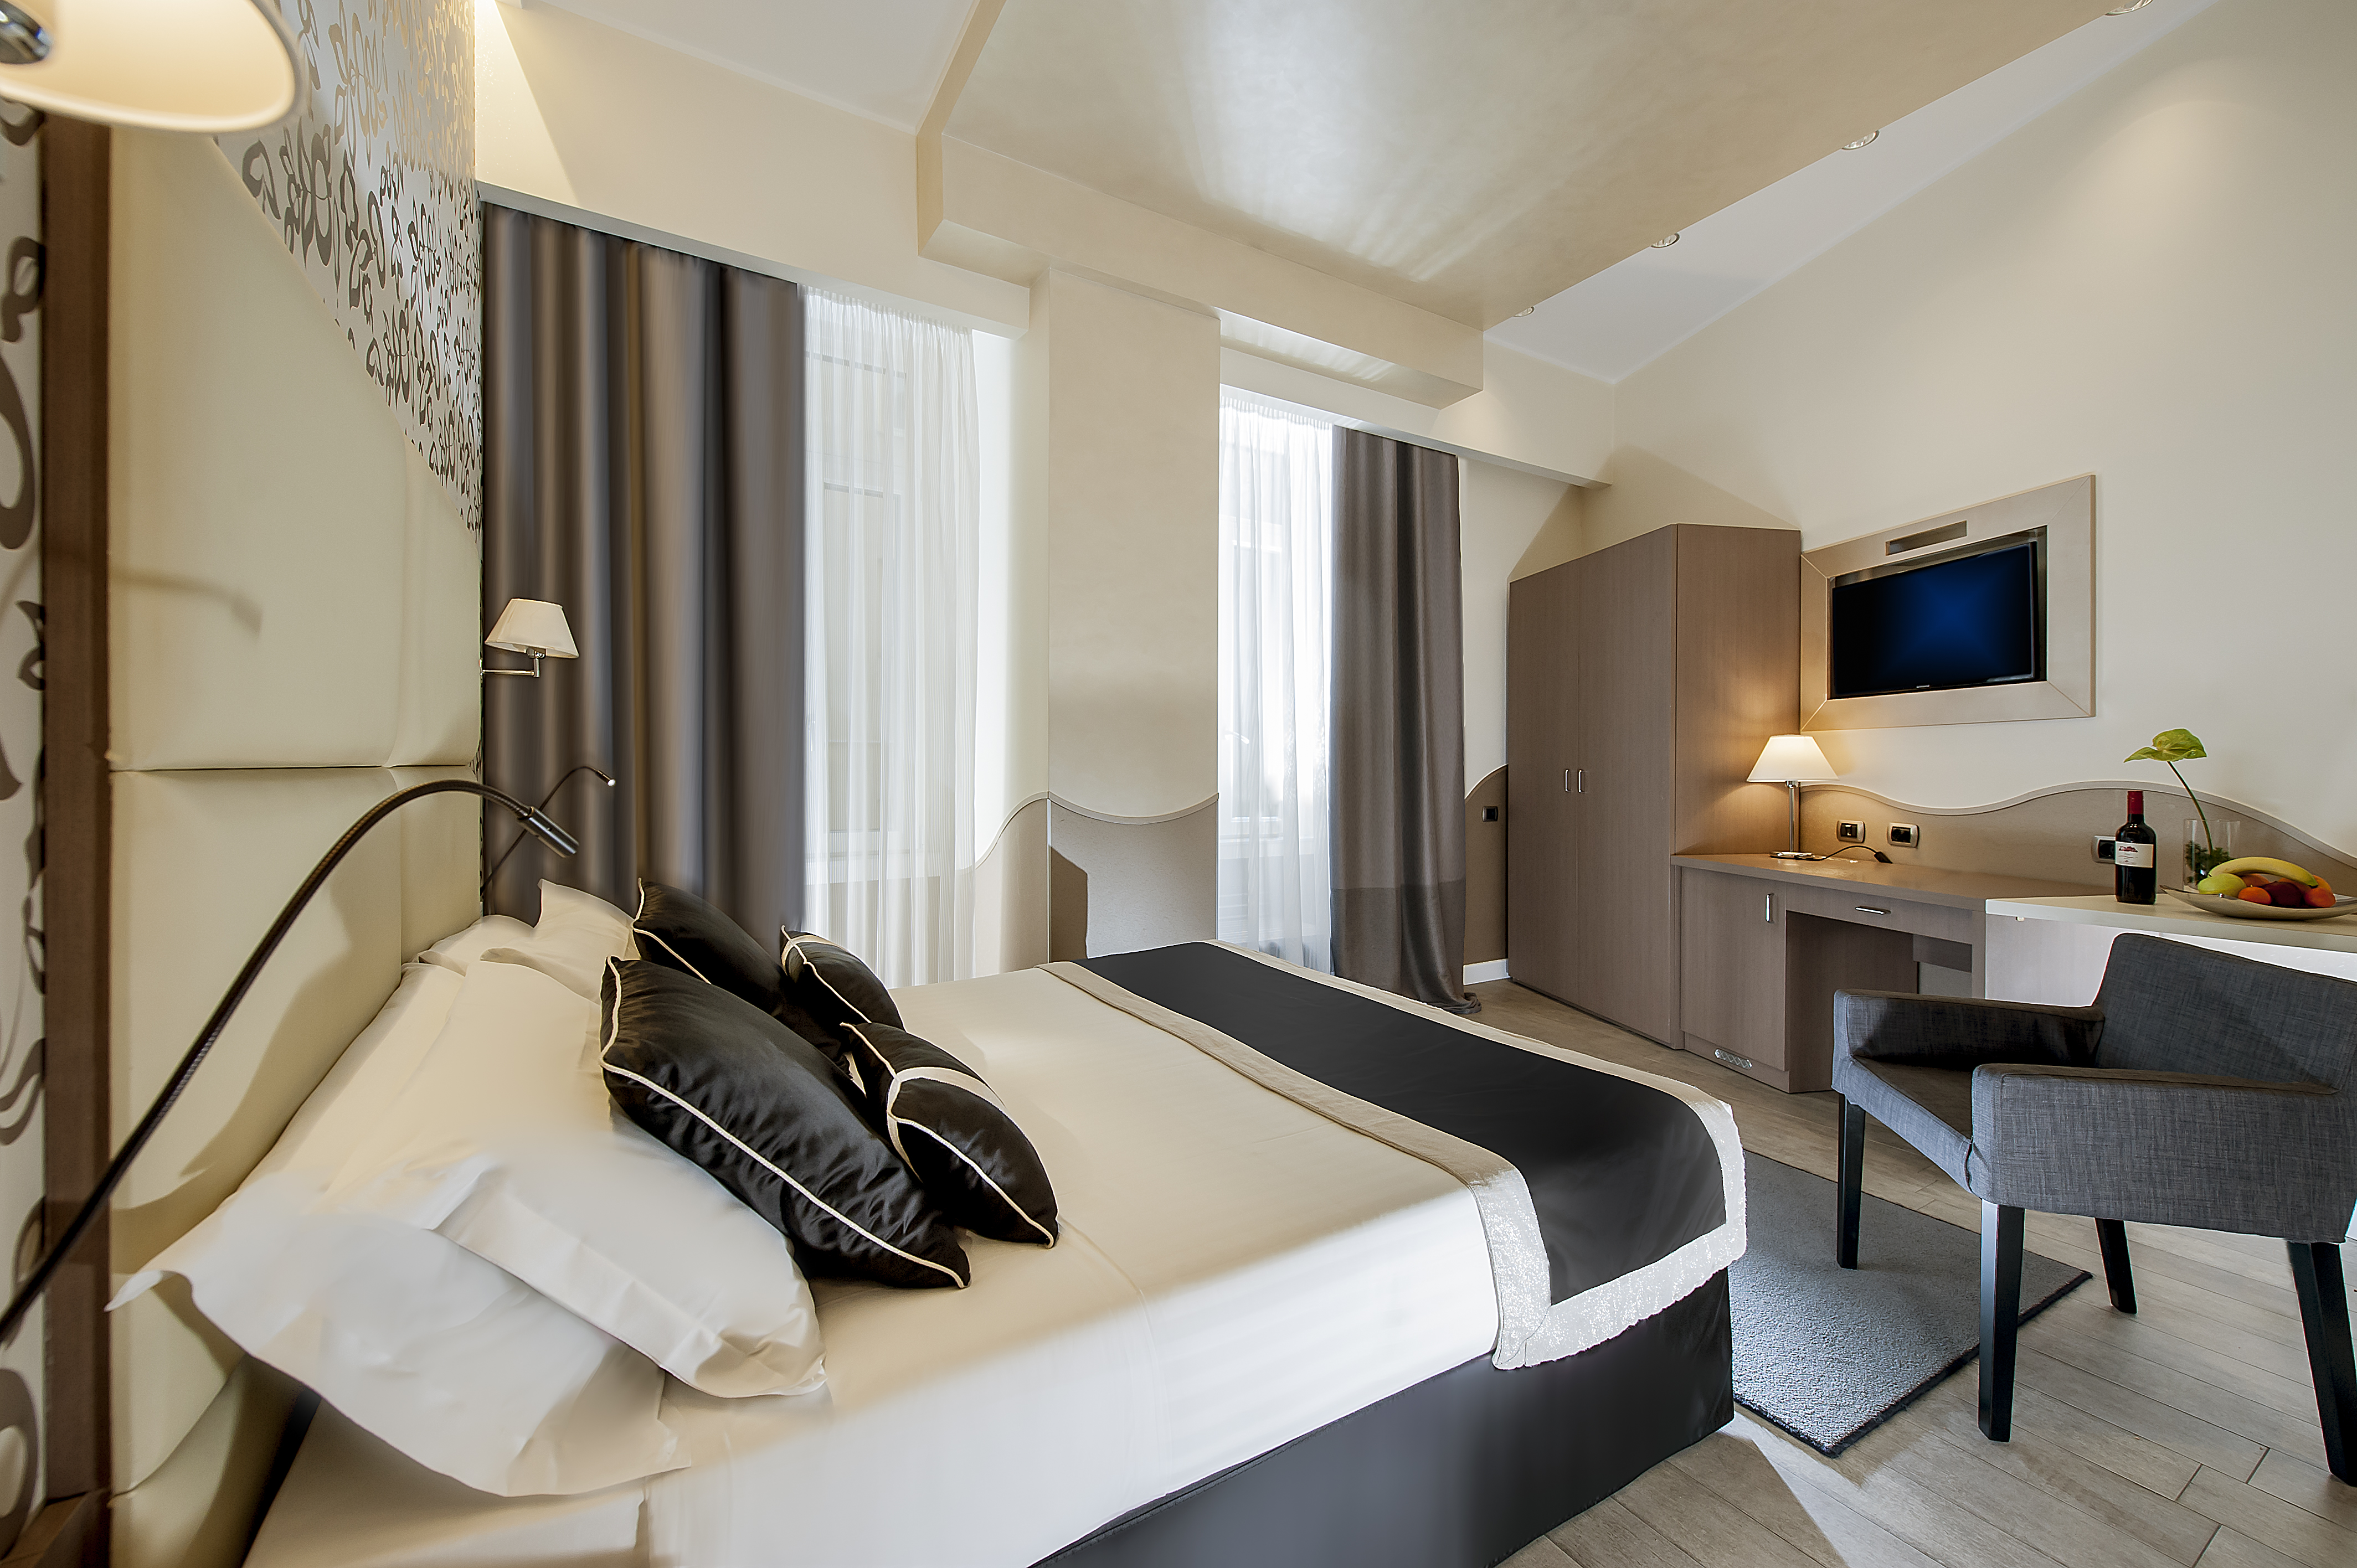 Demetra Hotel Rome New 4 Star Hotel In Rome City Center Near